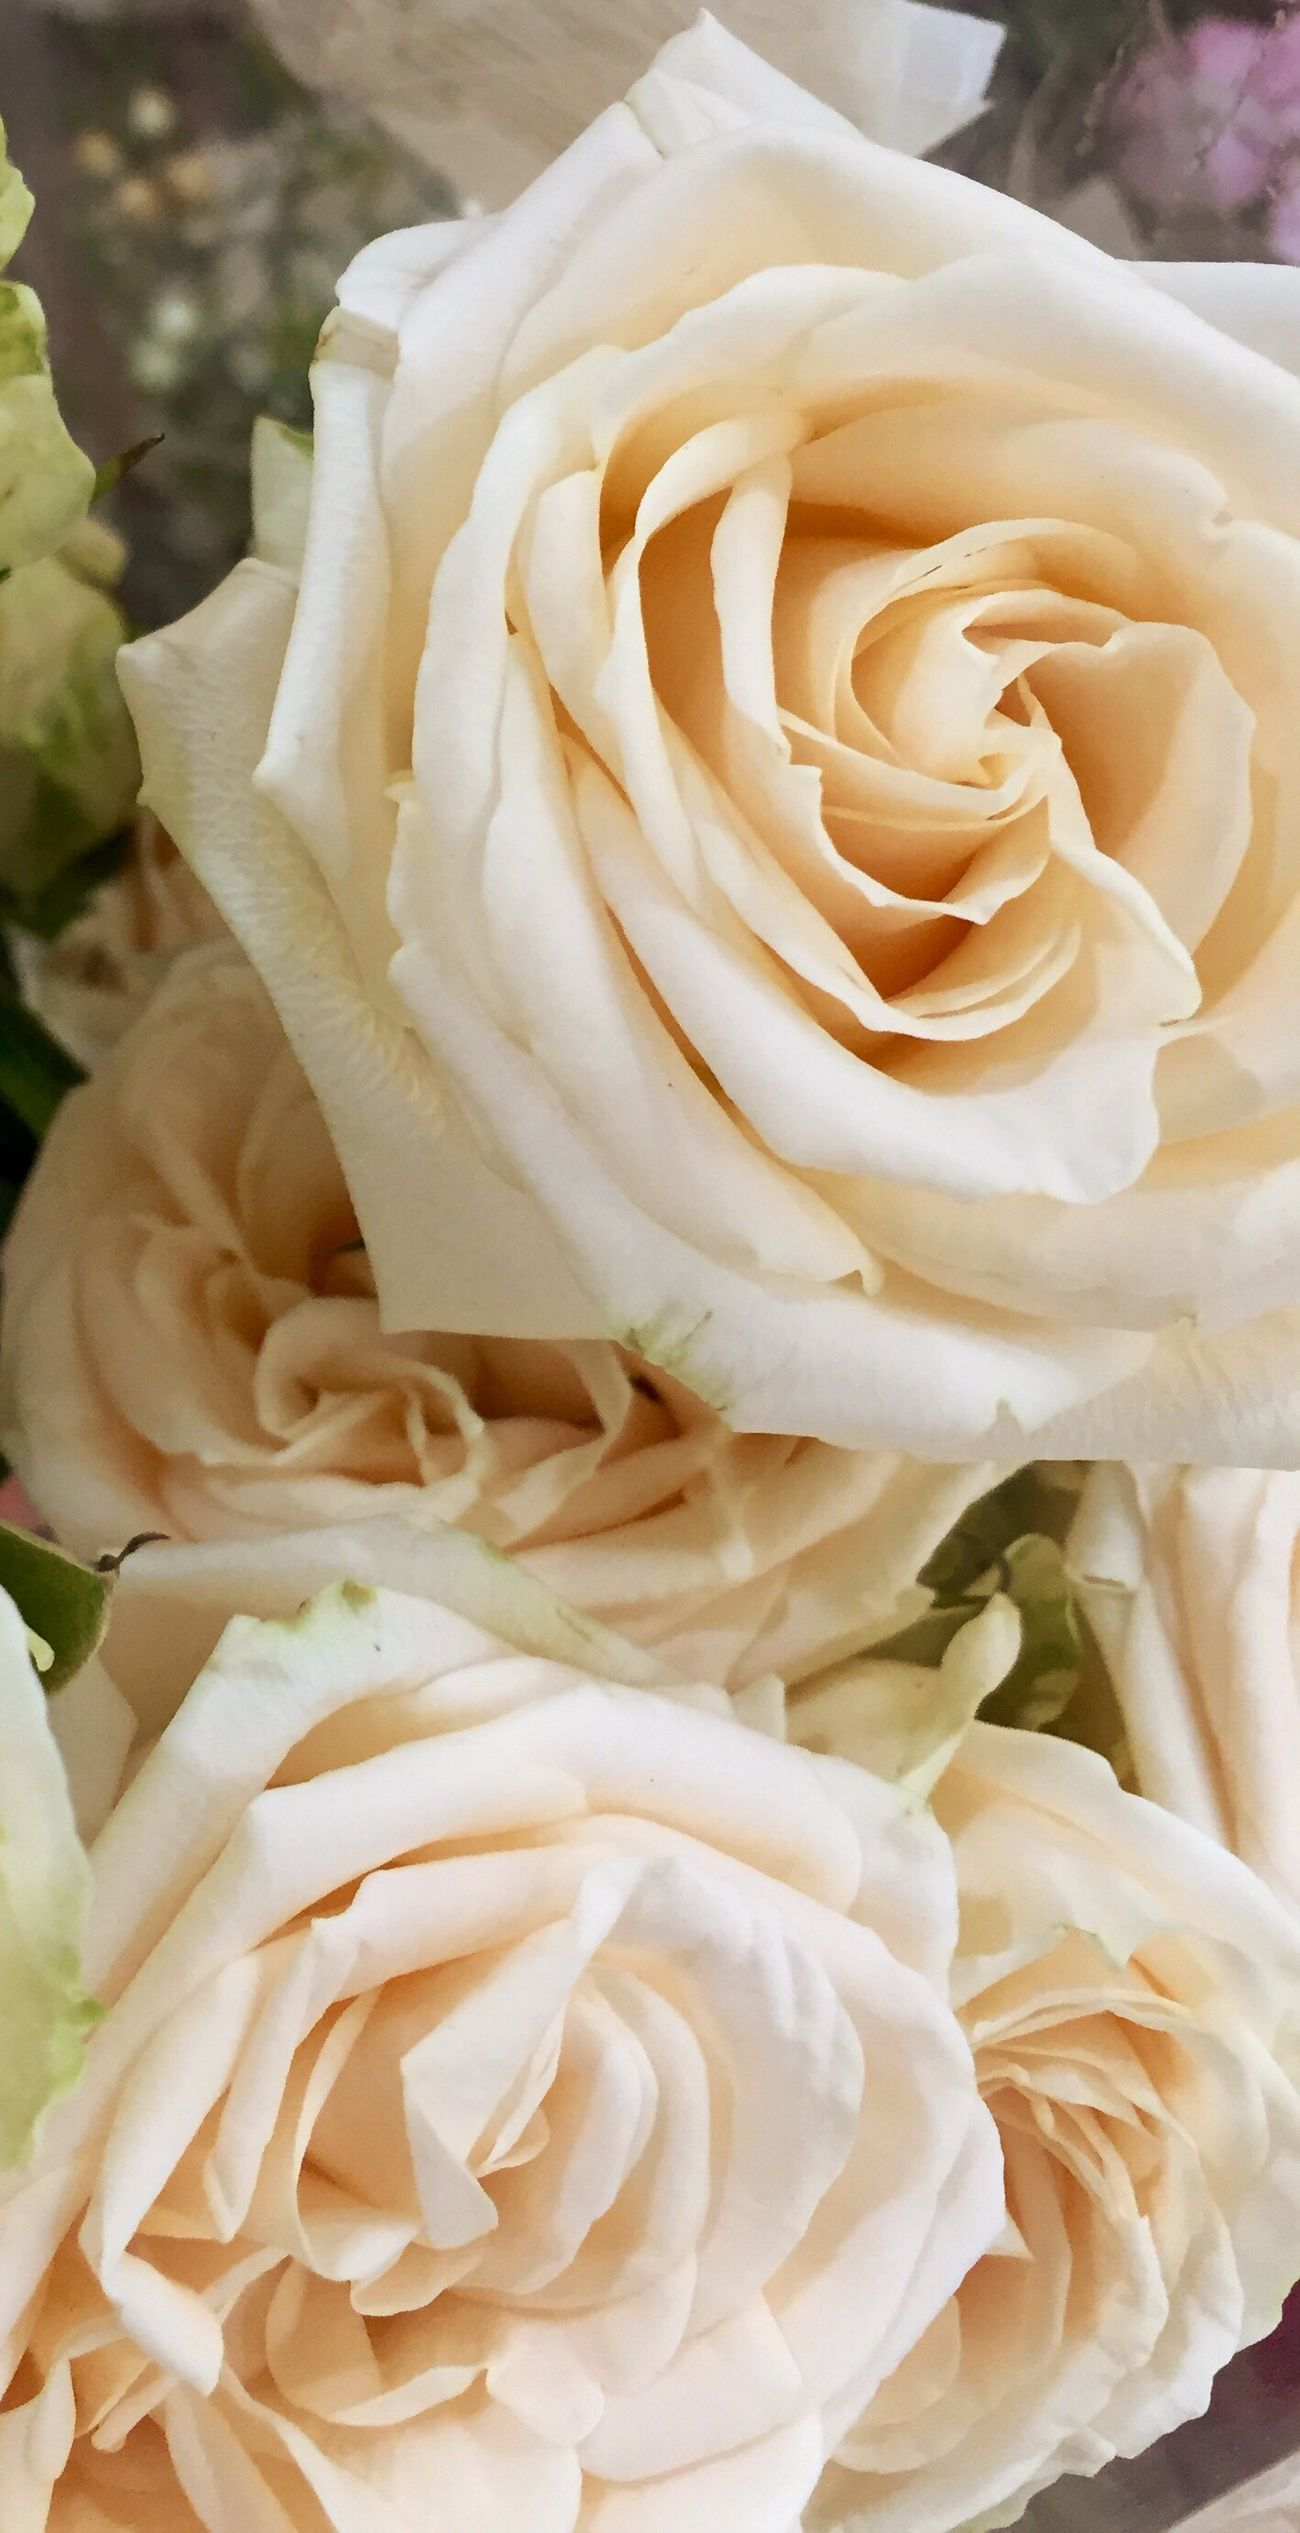 Flower Petal Freshness Flower Head Fragility Rose - Flower Beauty In Nature Close-up Rosé Nature In Bloom Bunch Of Flowers Growth Single Flower Yellow Springtime Softness Blossom Curled Up Day